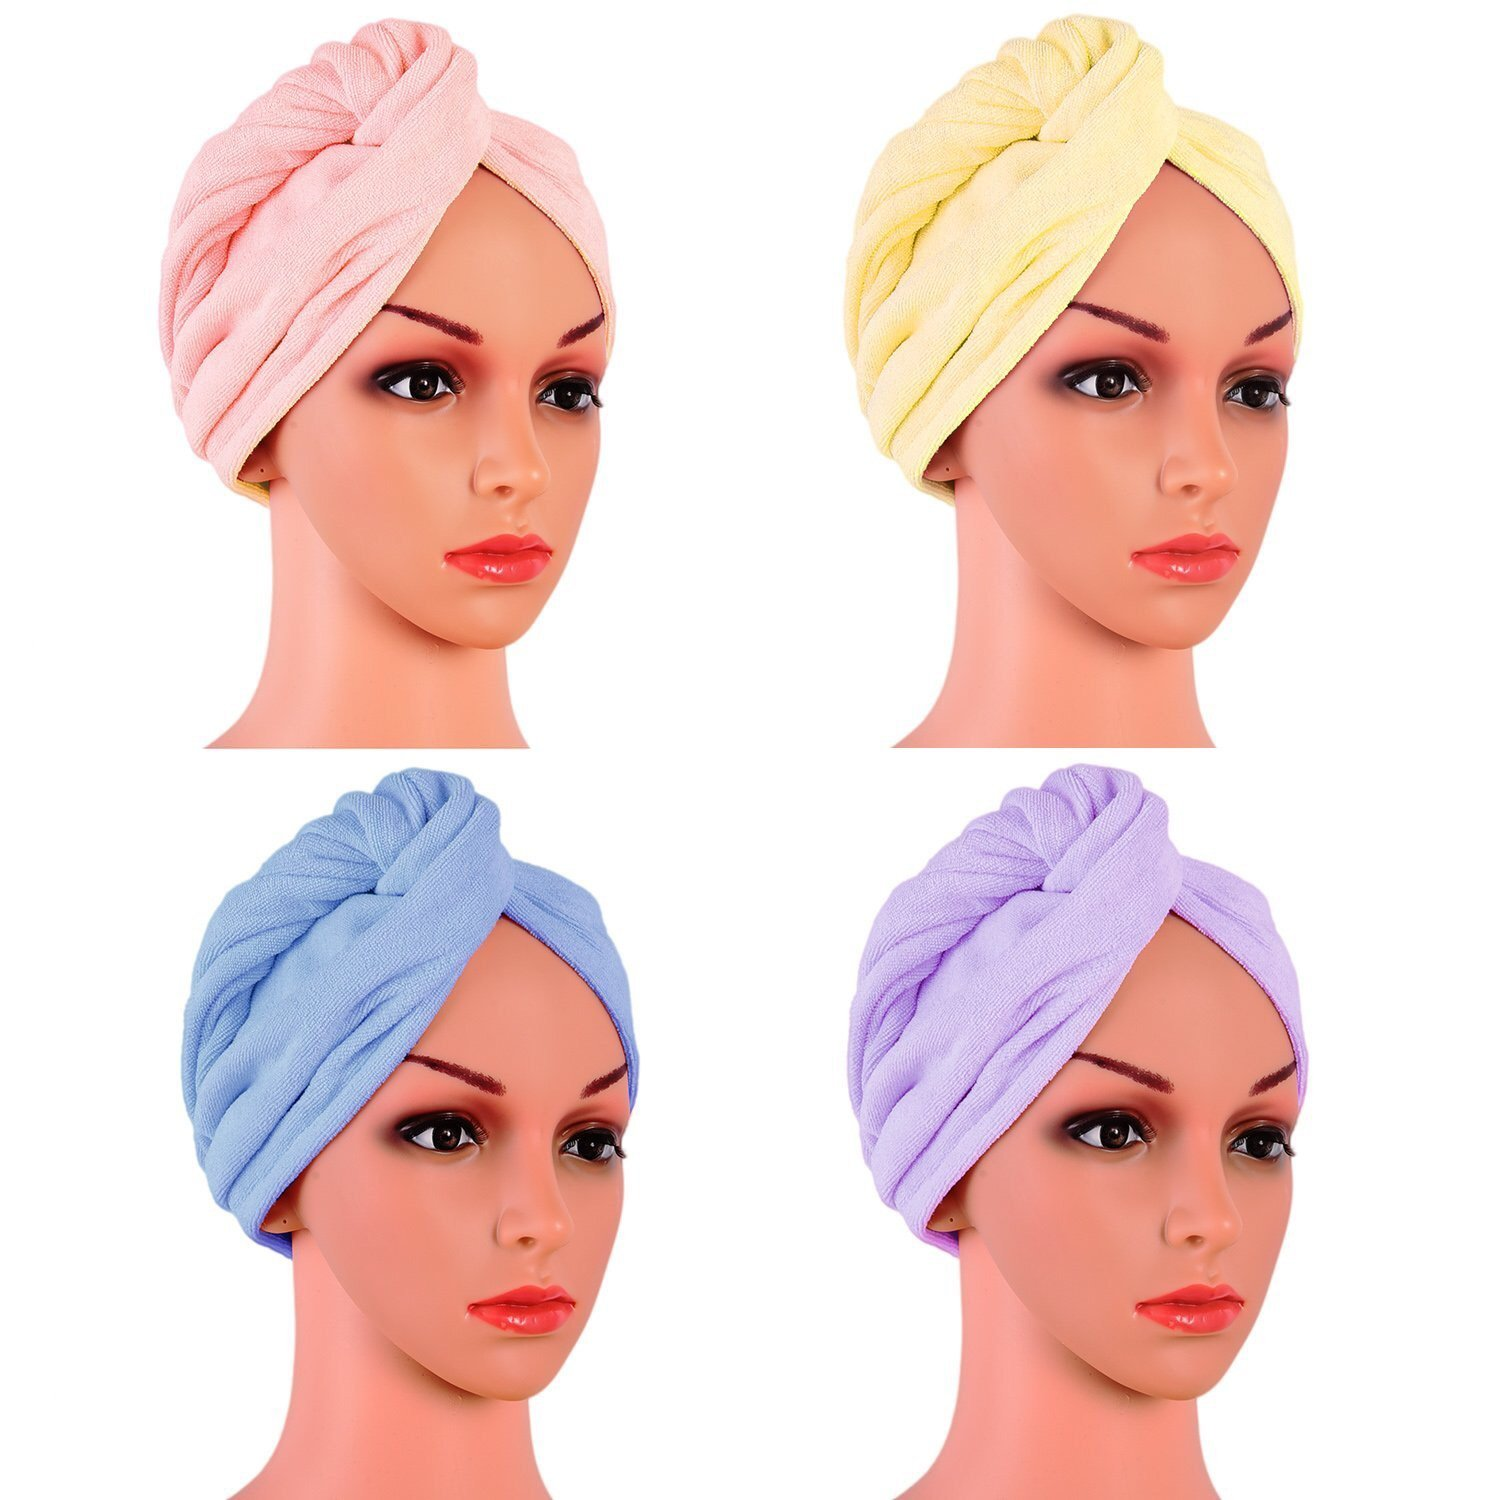 4 Pack Microfiber Hair Drying Towels, Fast Drying Hair Cap, Long Hair Wrap,Absorbent Twist Turban(Pink, yellow, blue, purple) by Si Tong